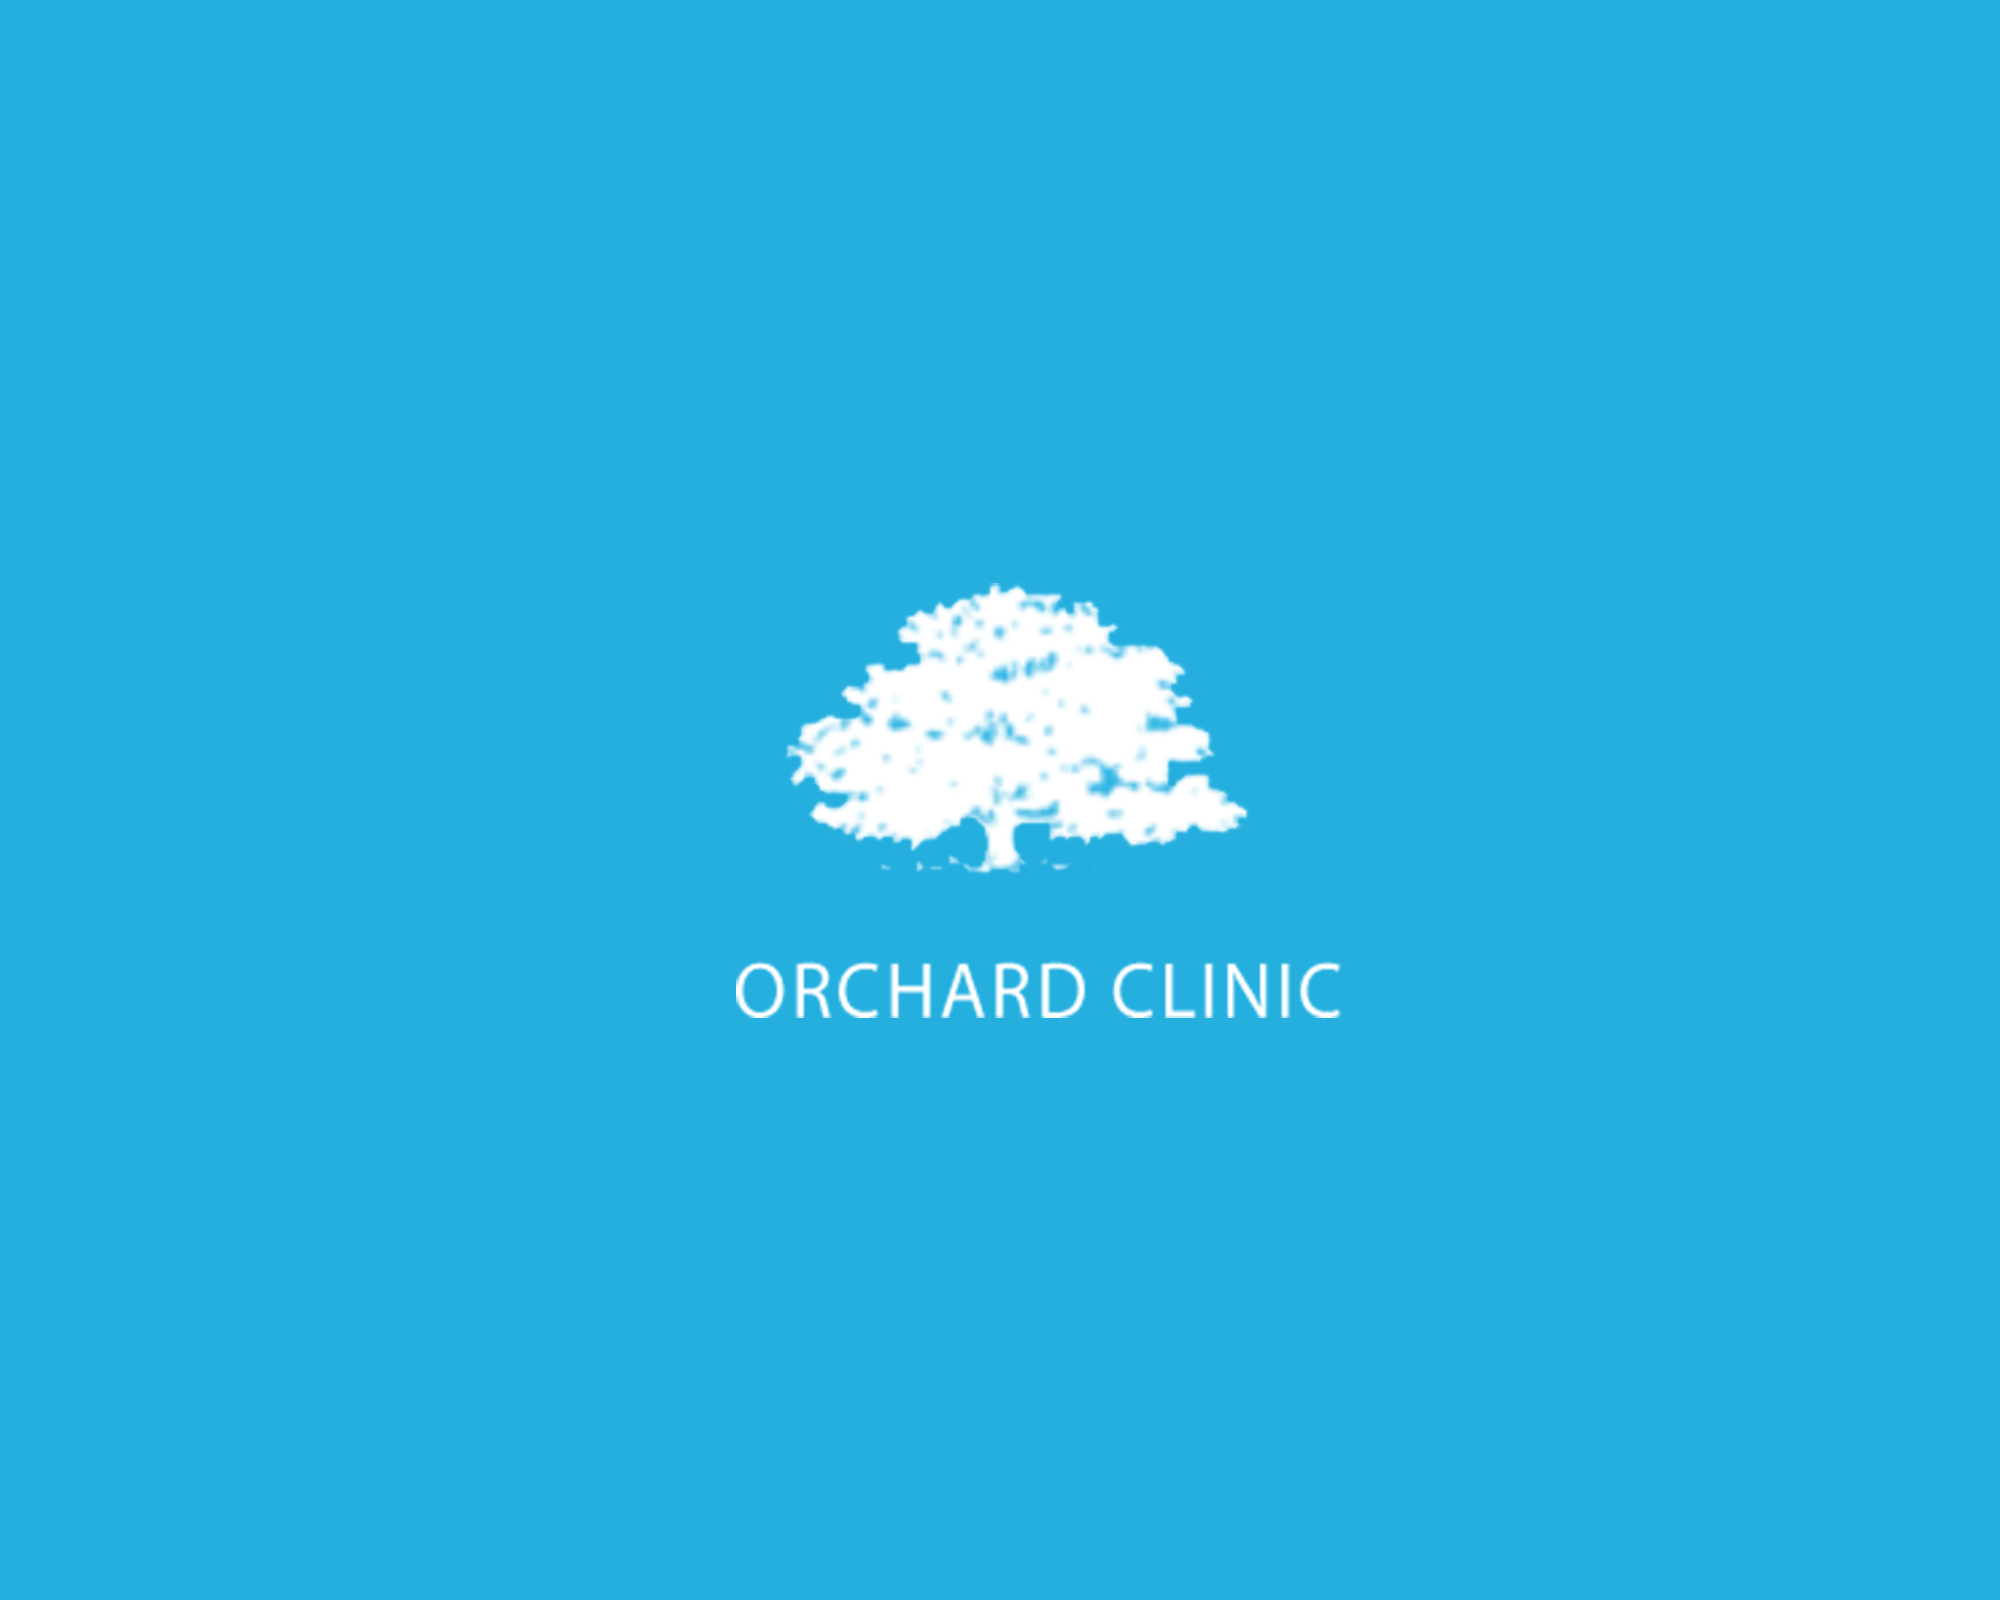 orchard clinic Logo